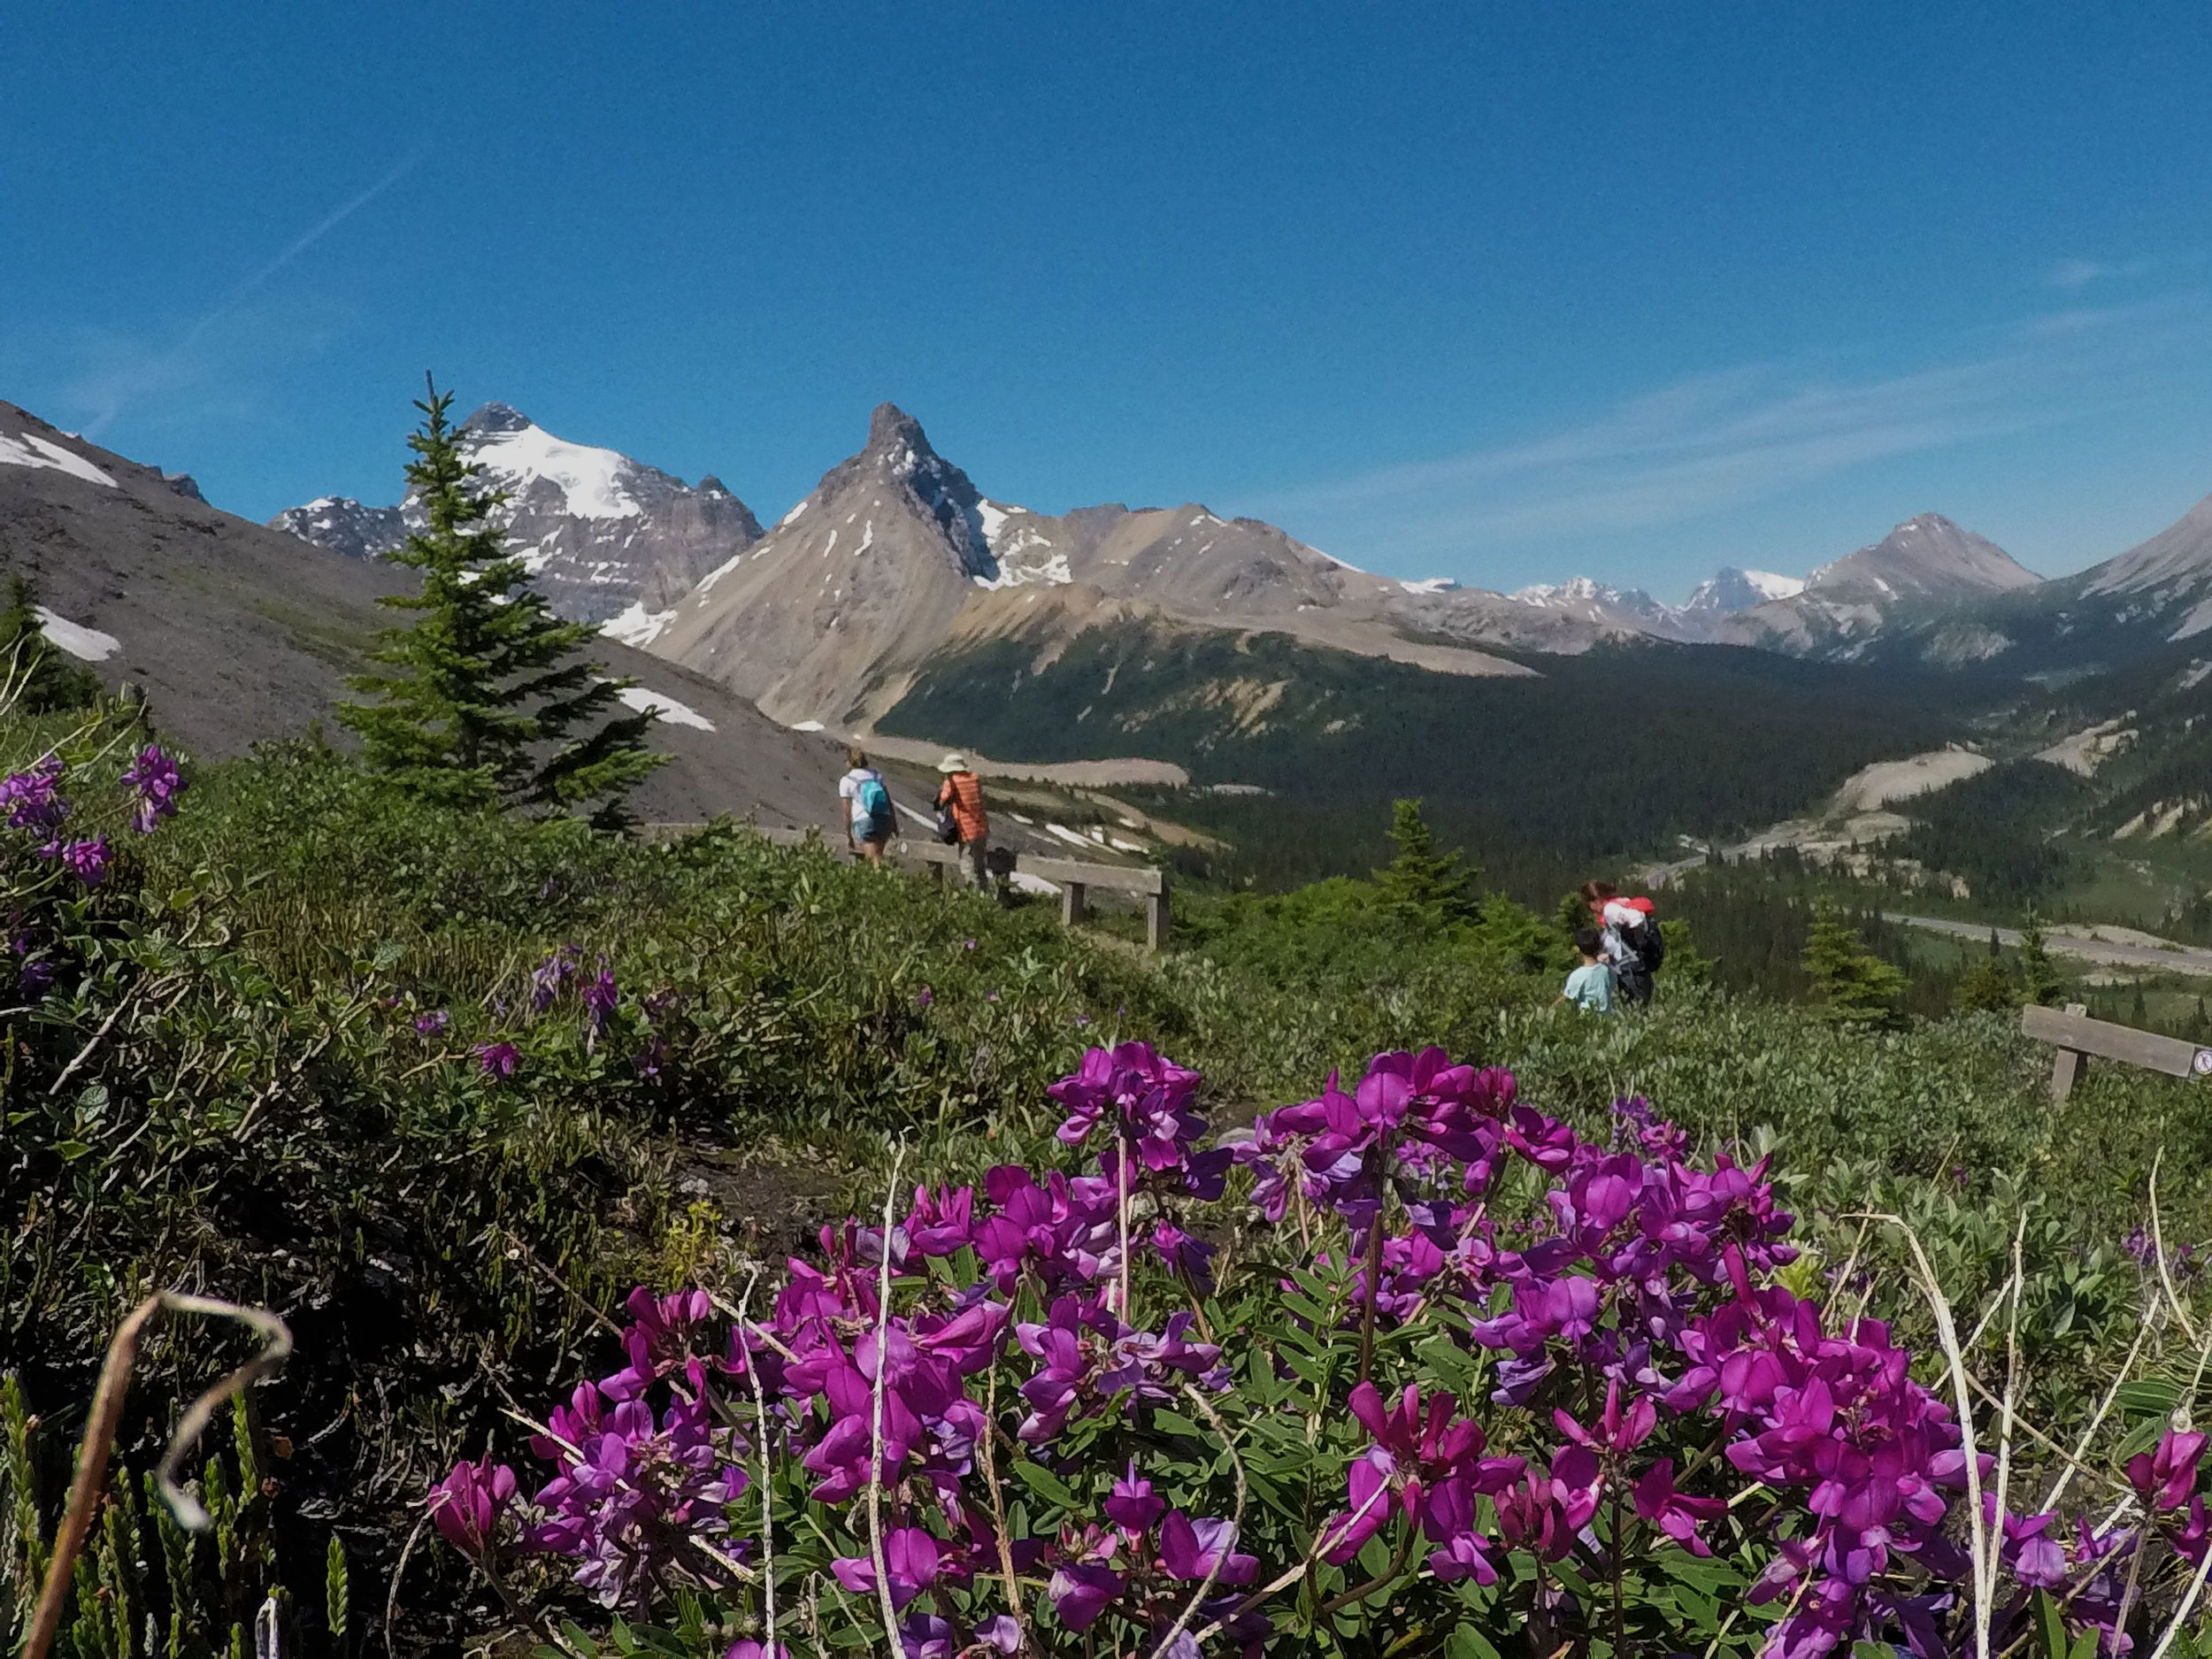 guided hiking tour in the Canadian Rockies.